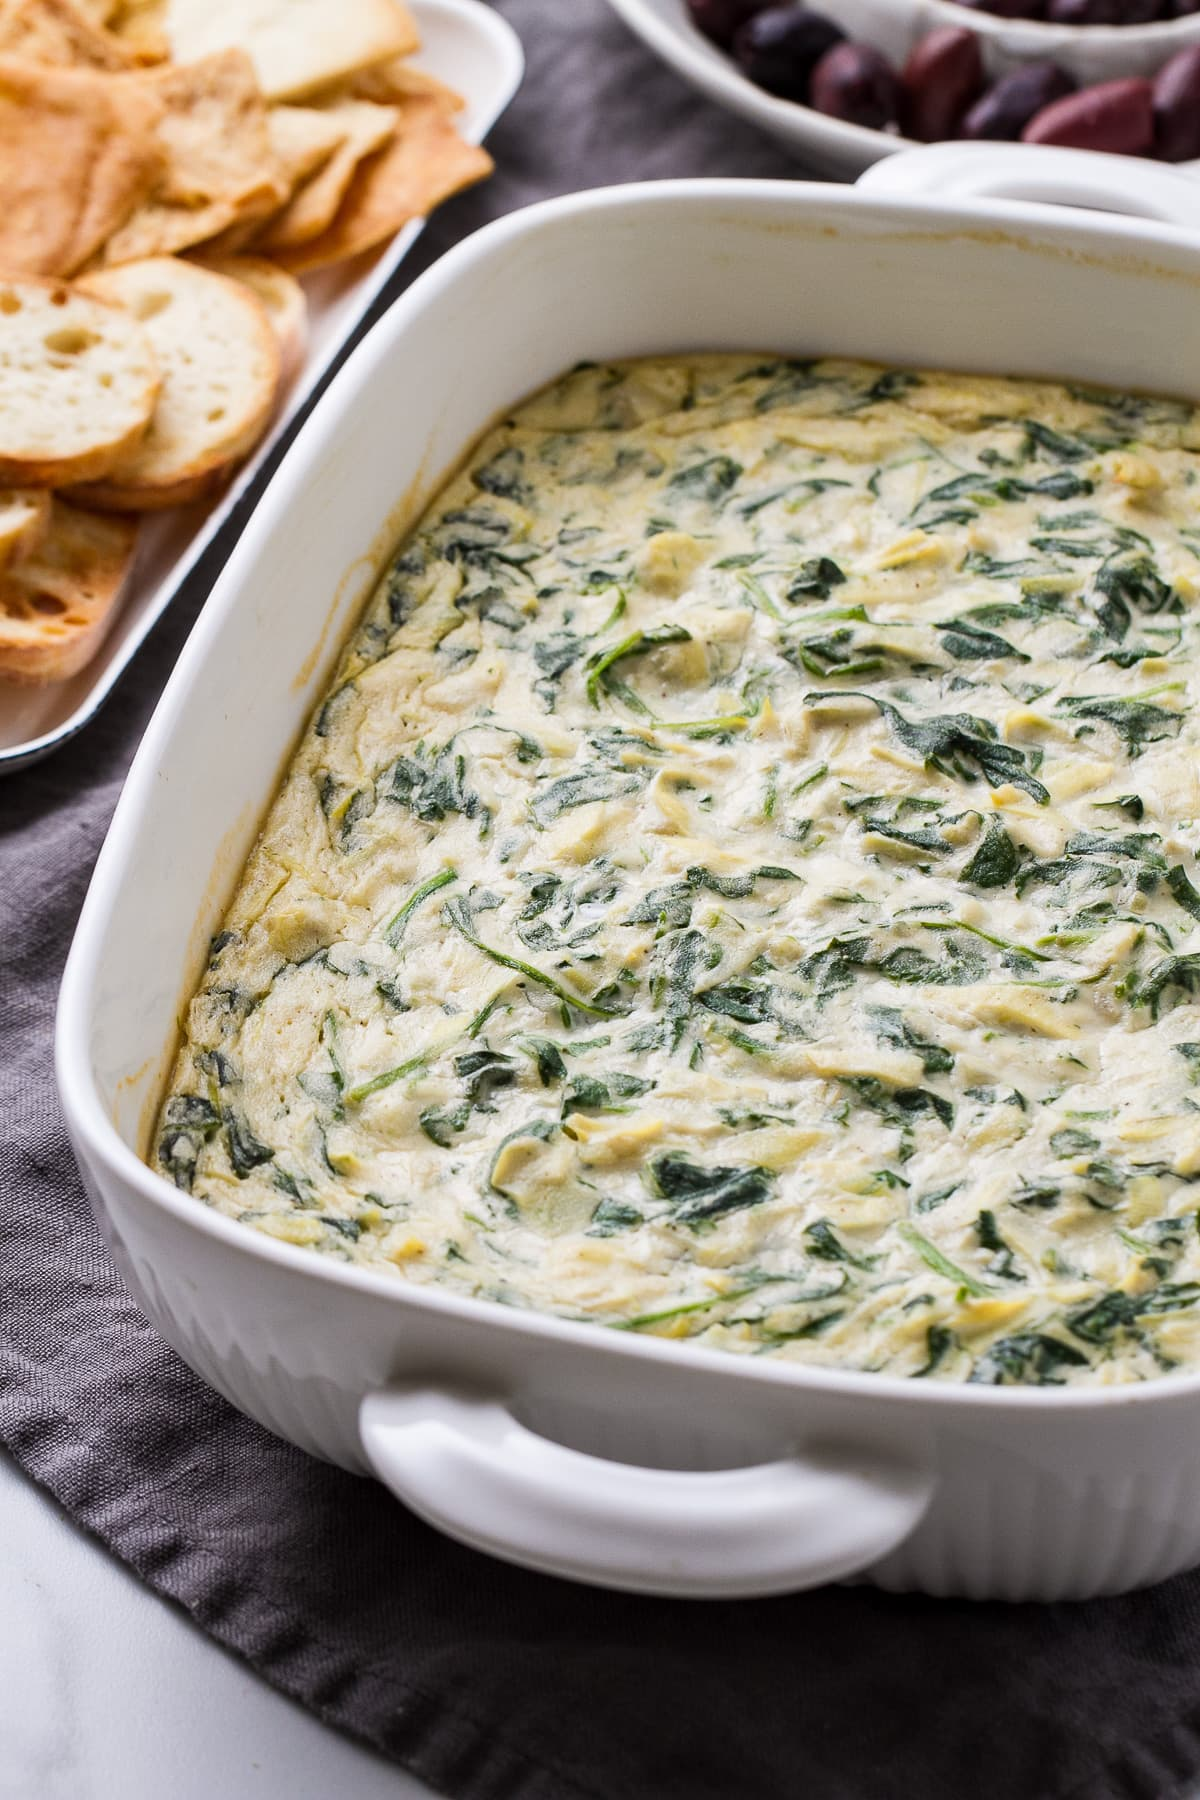 side angle view of prepared vegan spinach artichoke dip with items surrounded.